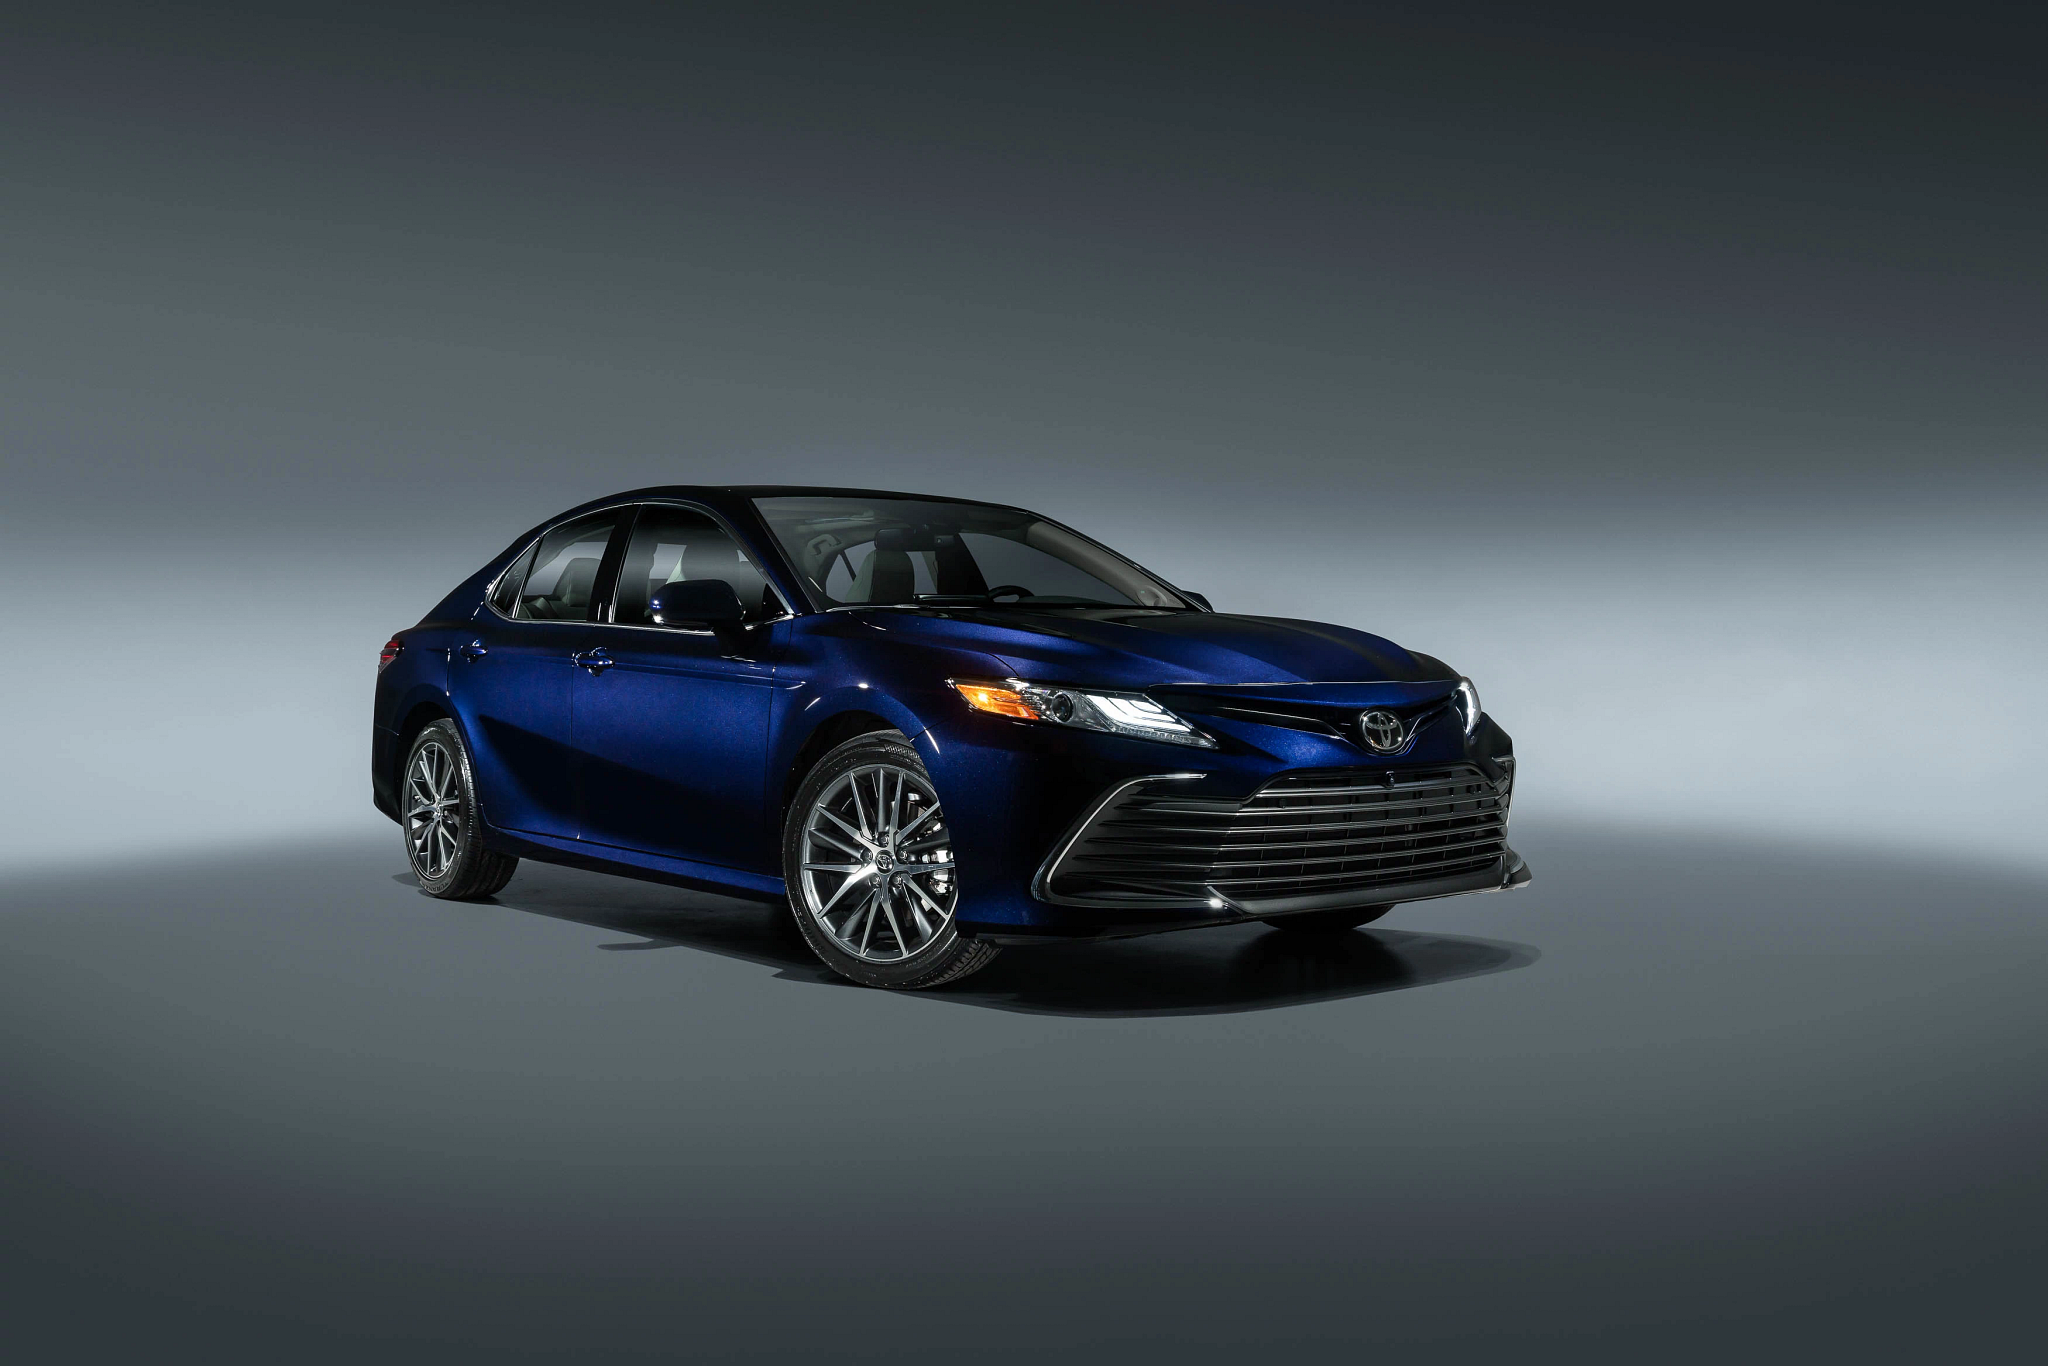 2021 Toyota Camry and Camry Hybrid Get Safety, Tech Upgrades